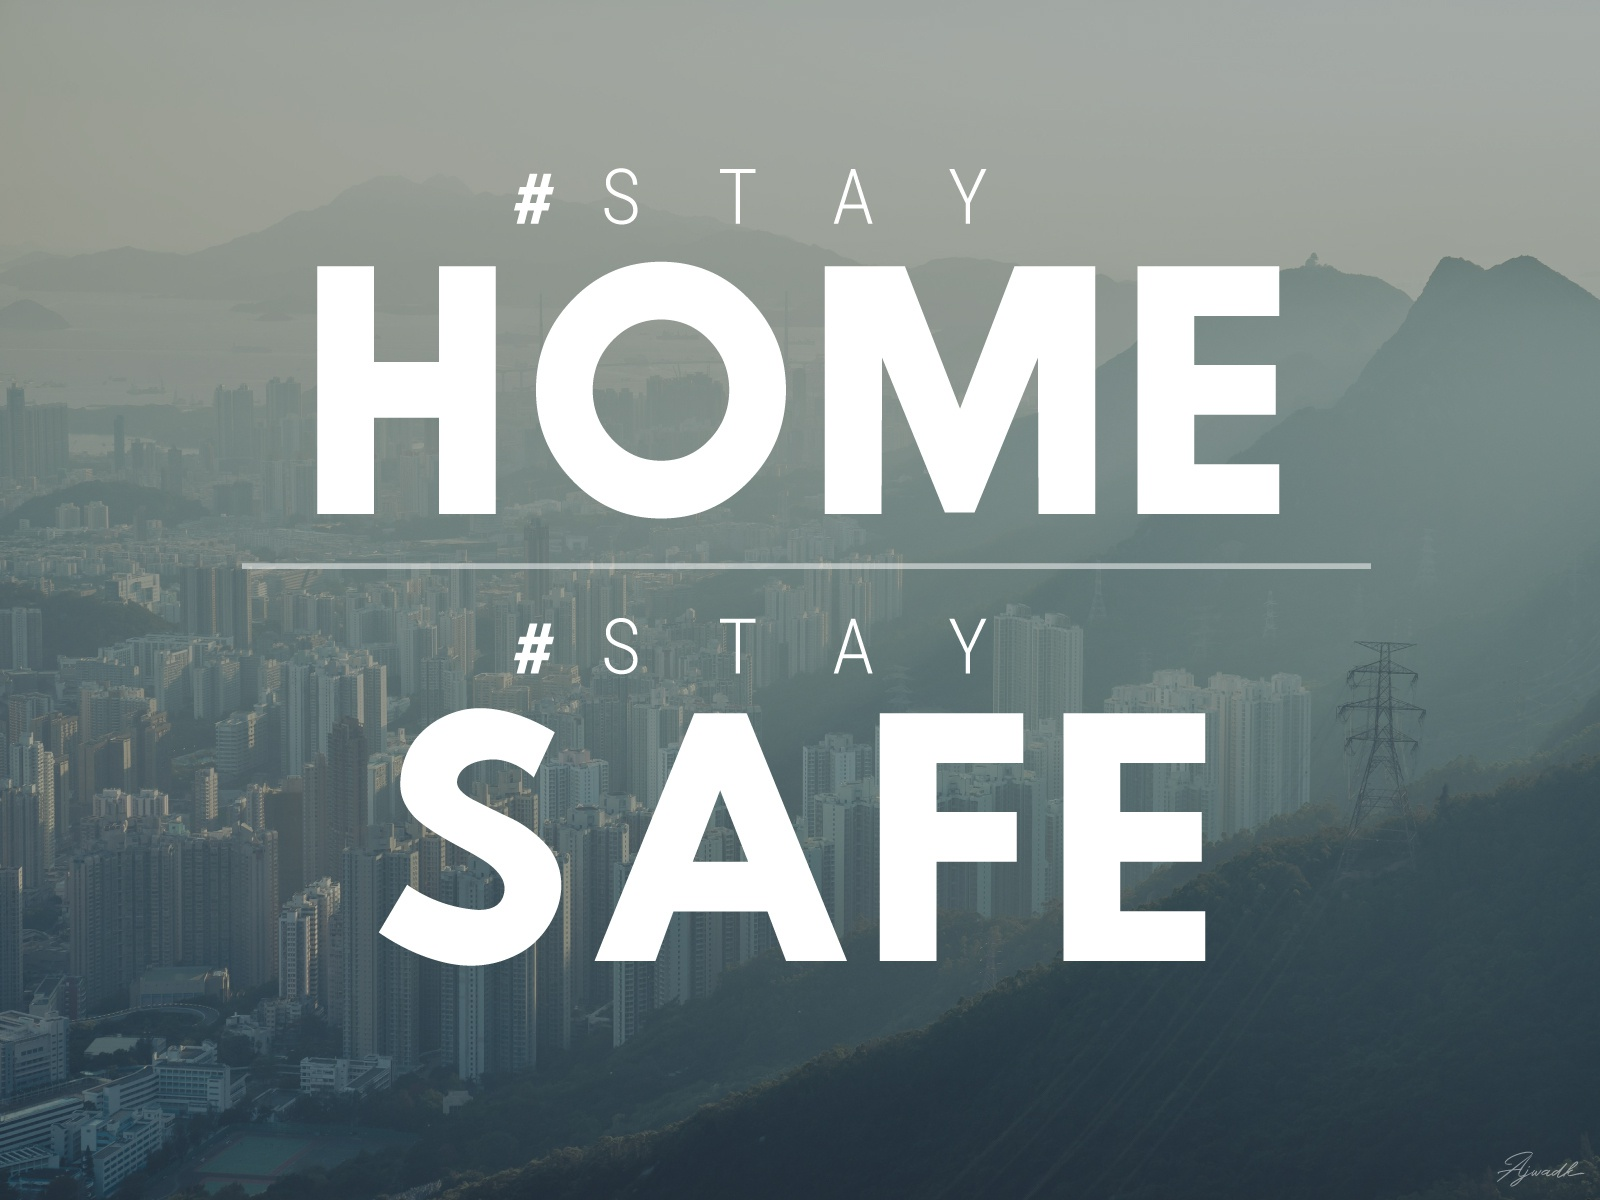 Stay HOME Stay SAFE by Muhammed Ajwad K on Dribbble